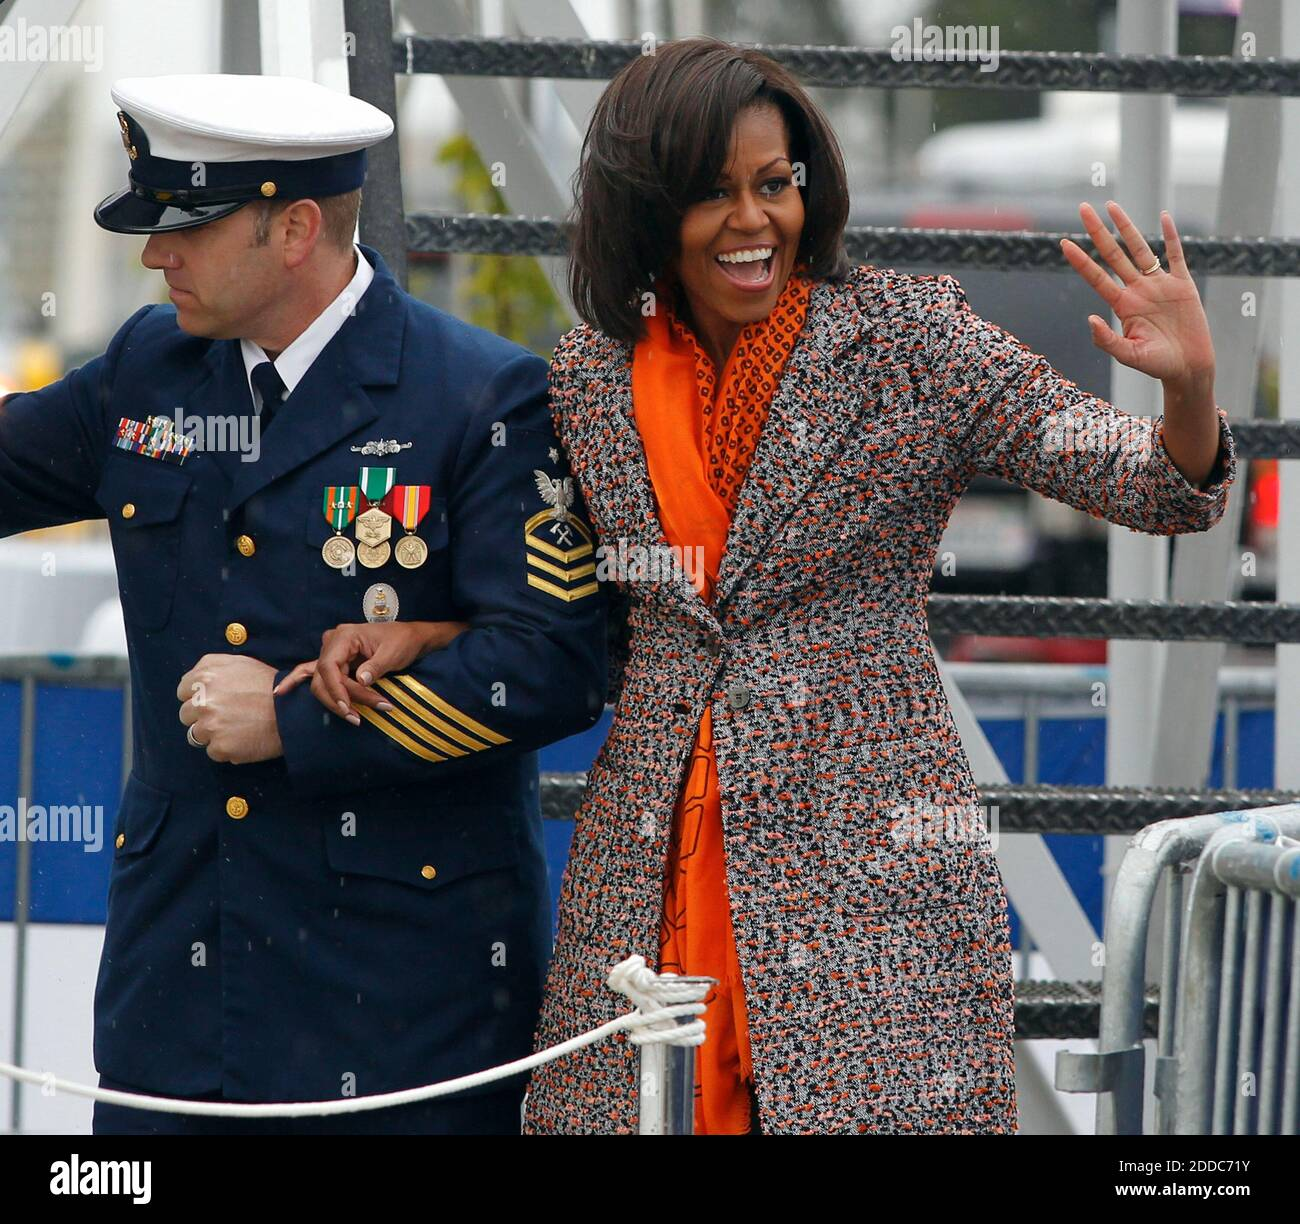 NO FILM, NO VIDEO, NO TV, NO DOCUMENTARY - First lady Michelle Obama, right, escorted by Coast Guard Senior Chief David Stephens, waves to members of the audience during her entrance from the Coast Guard Cutter Stratton for a ceremony on Coast Guard Island in Alameda, CA, USA ON March 31, 2012. The first lady made the trip to California to join in the commissioning ceremony placing the ship into active service. Photo by Anda Chu/Oakland Tribune/MCT/ABACAPRESS.COM Stock Photo